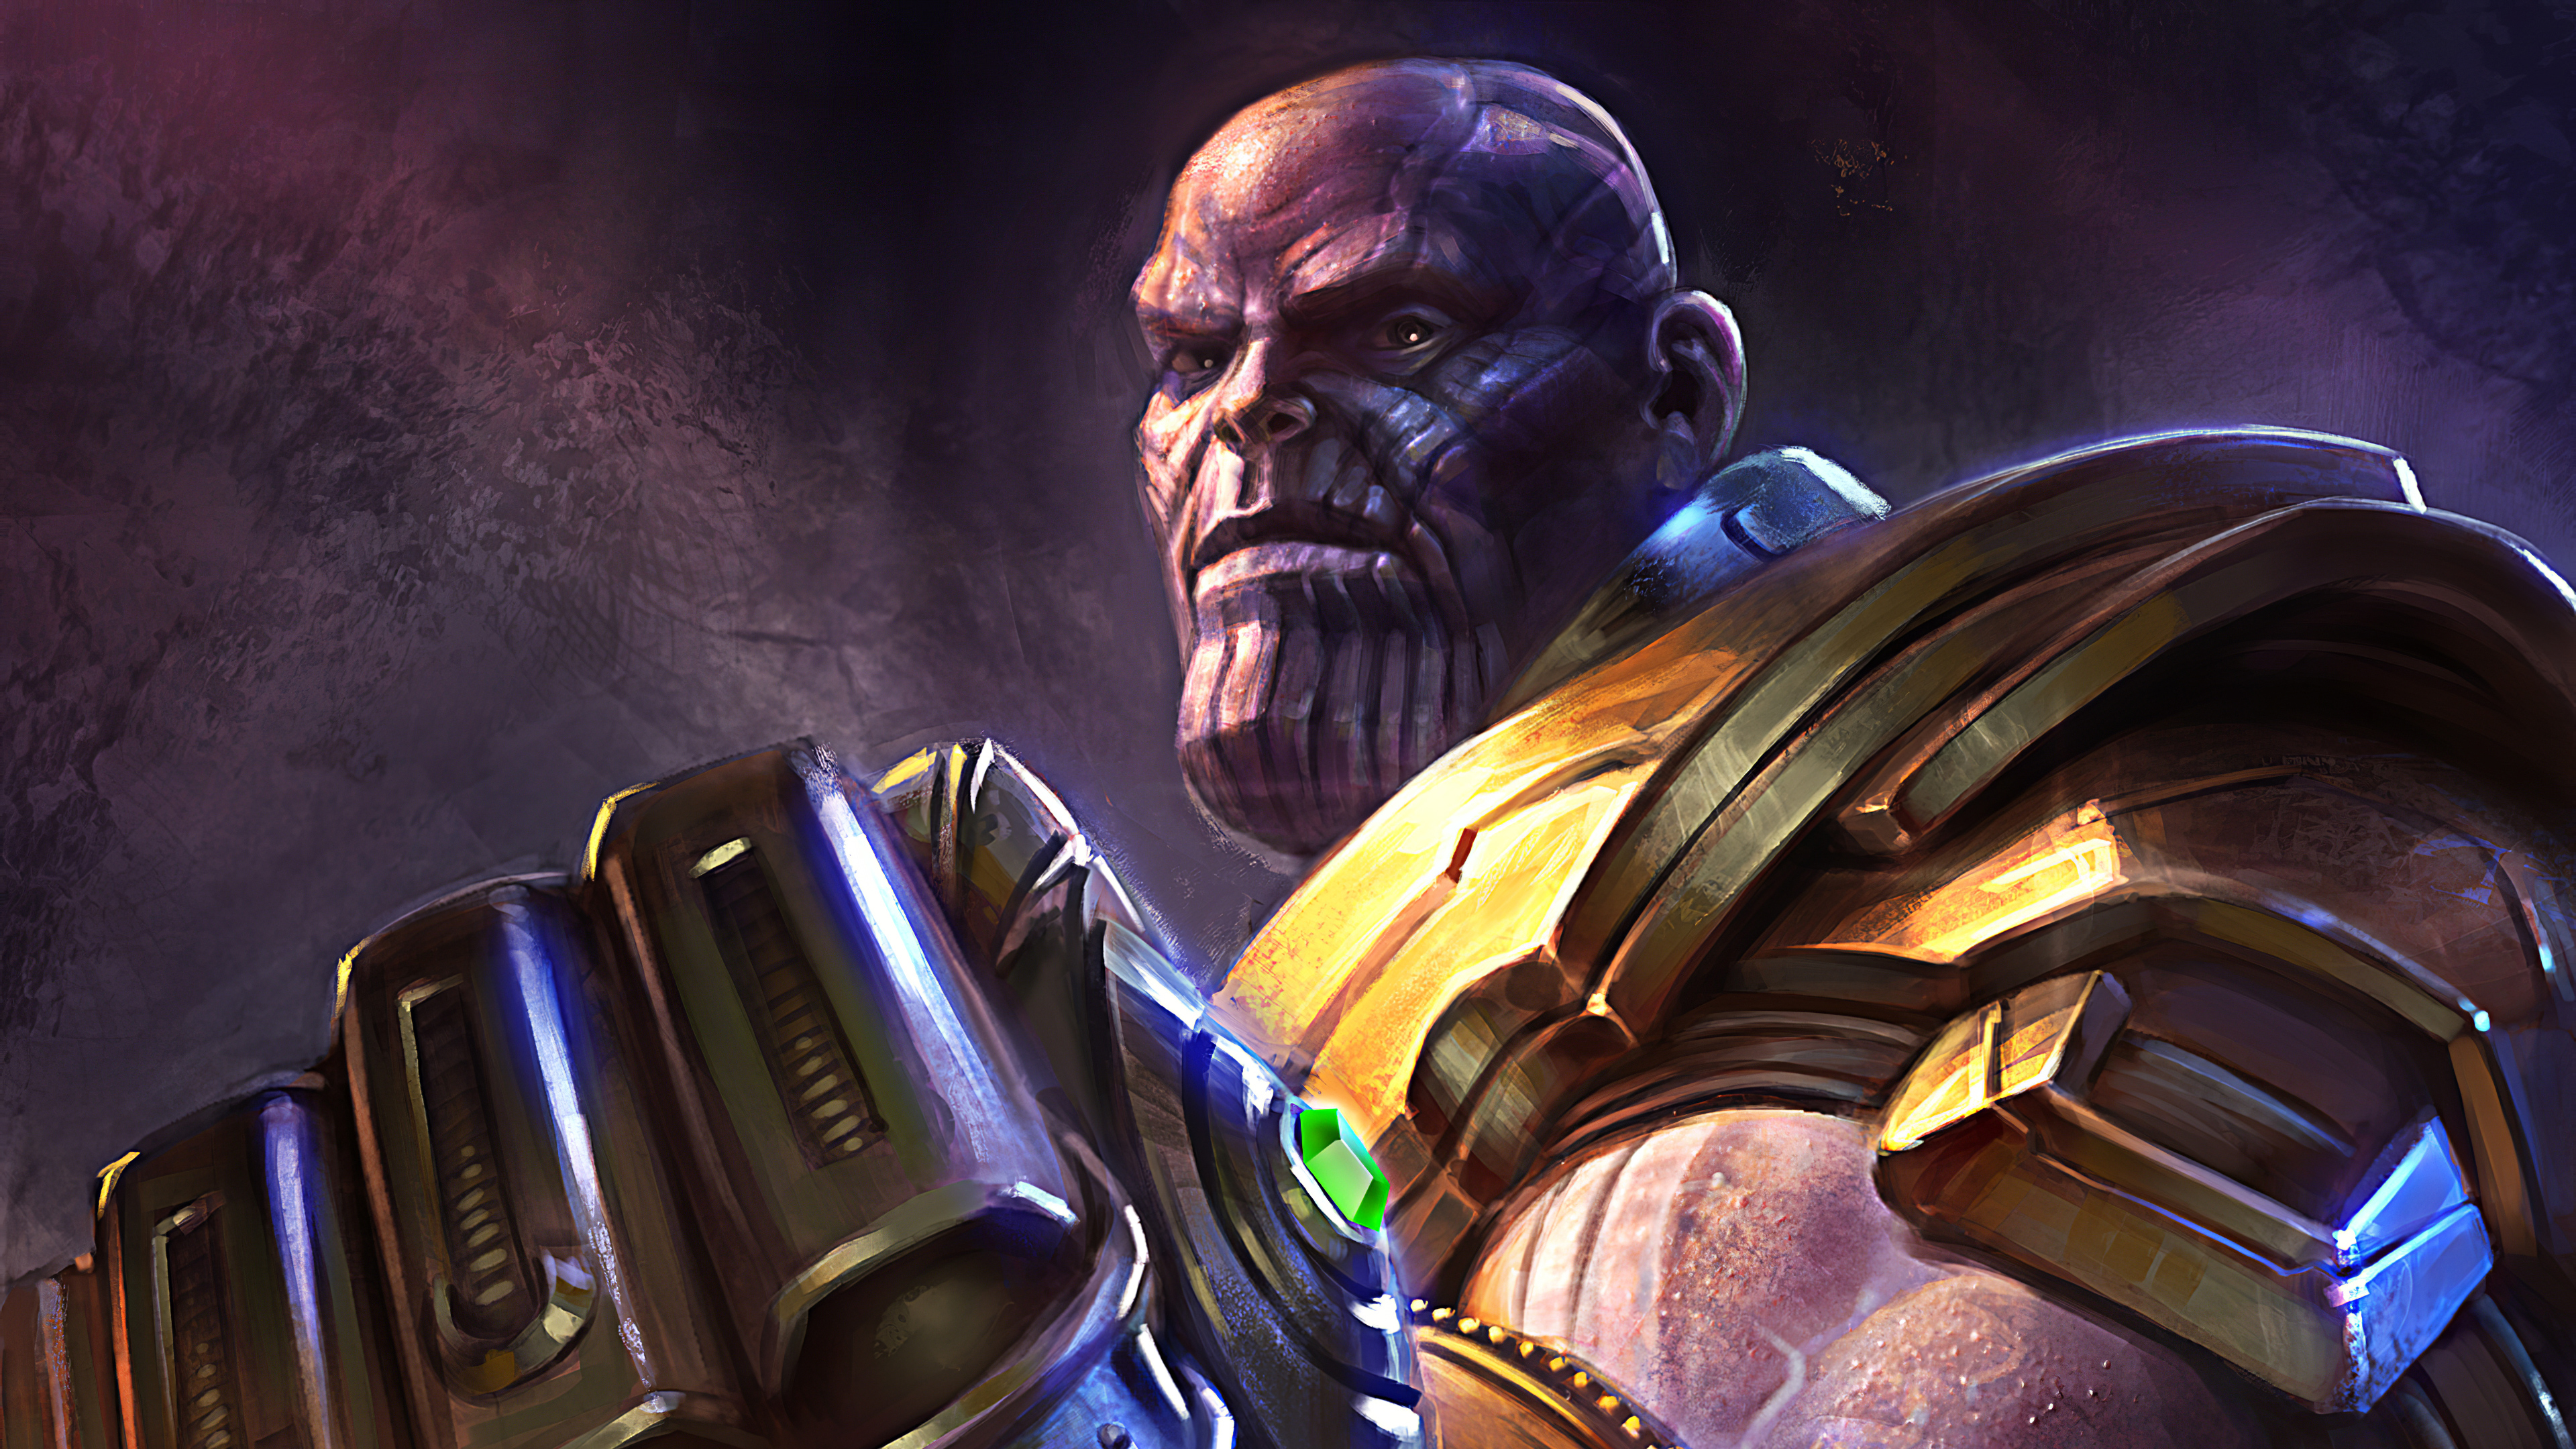 1440x900 Artwork Thanos 4k 1440x900 Resolution Hd 4k Wallpapers Images Backgrounds Photos And Pictures